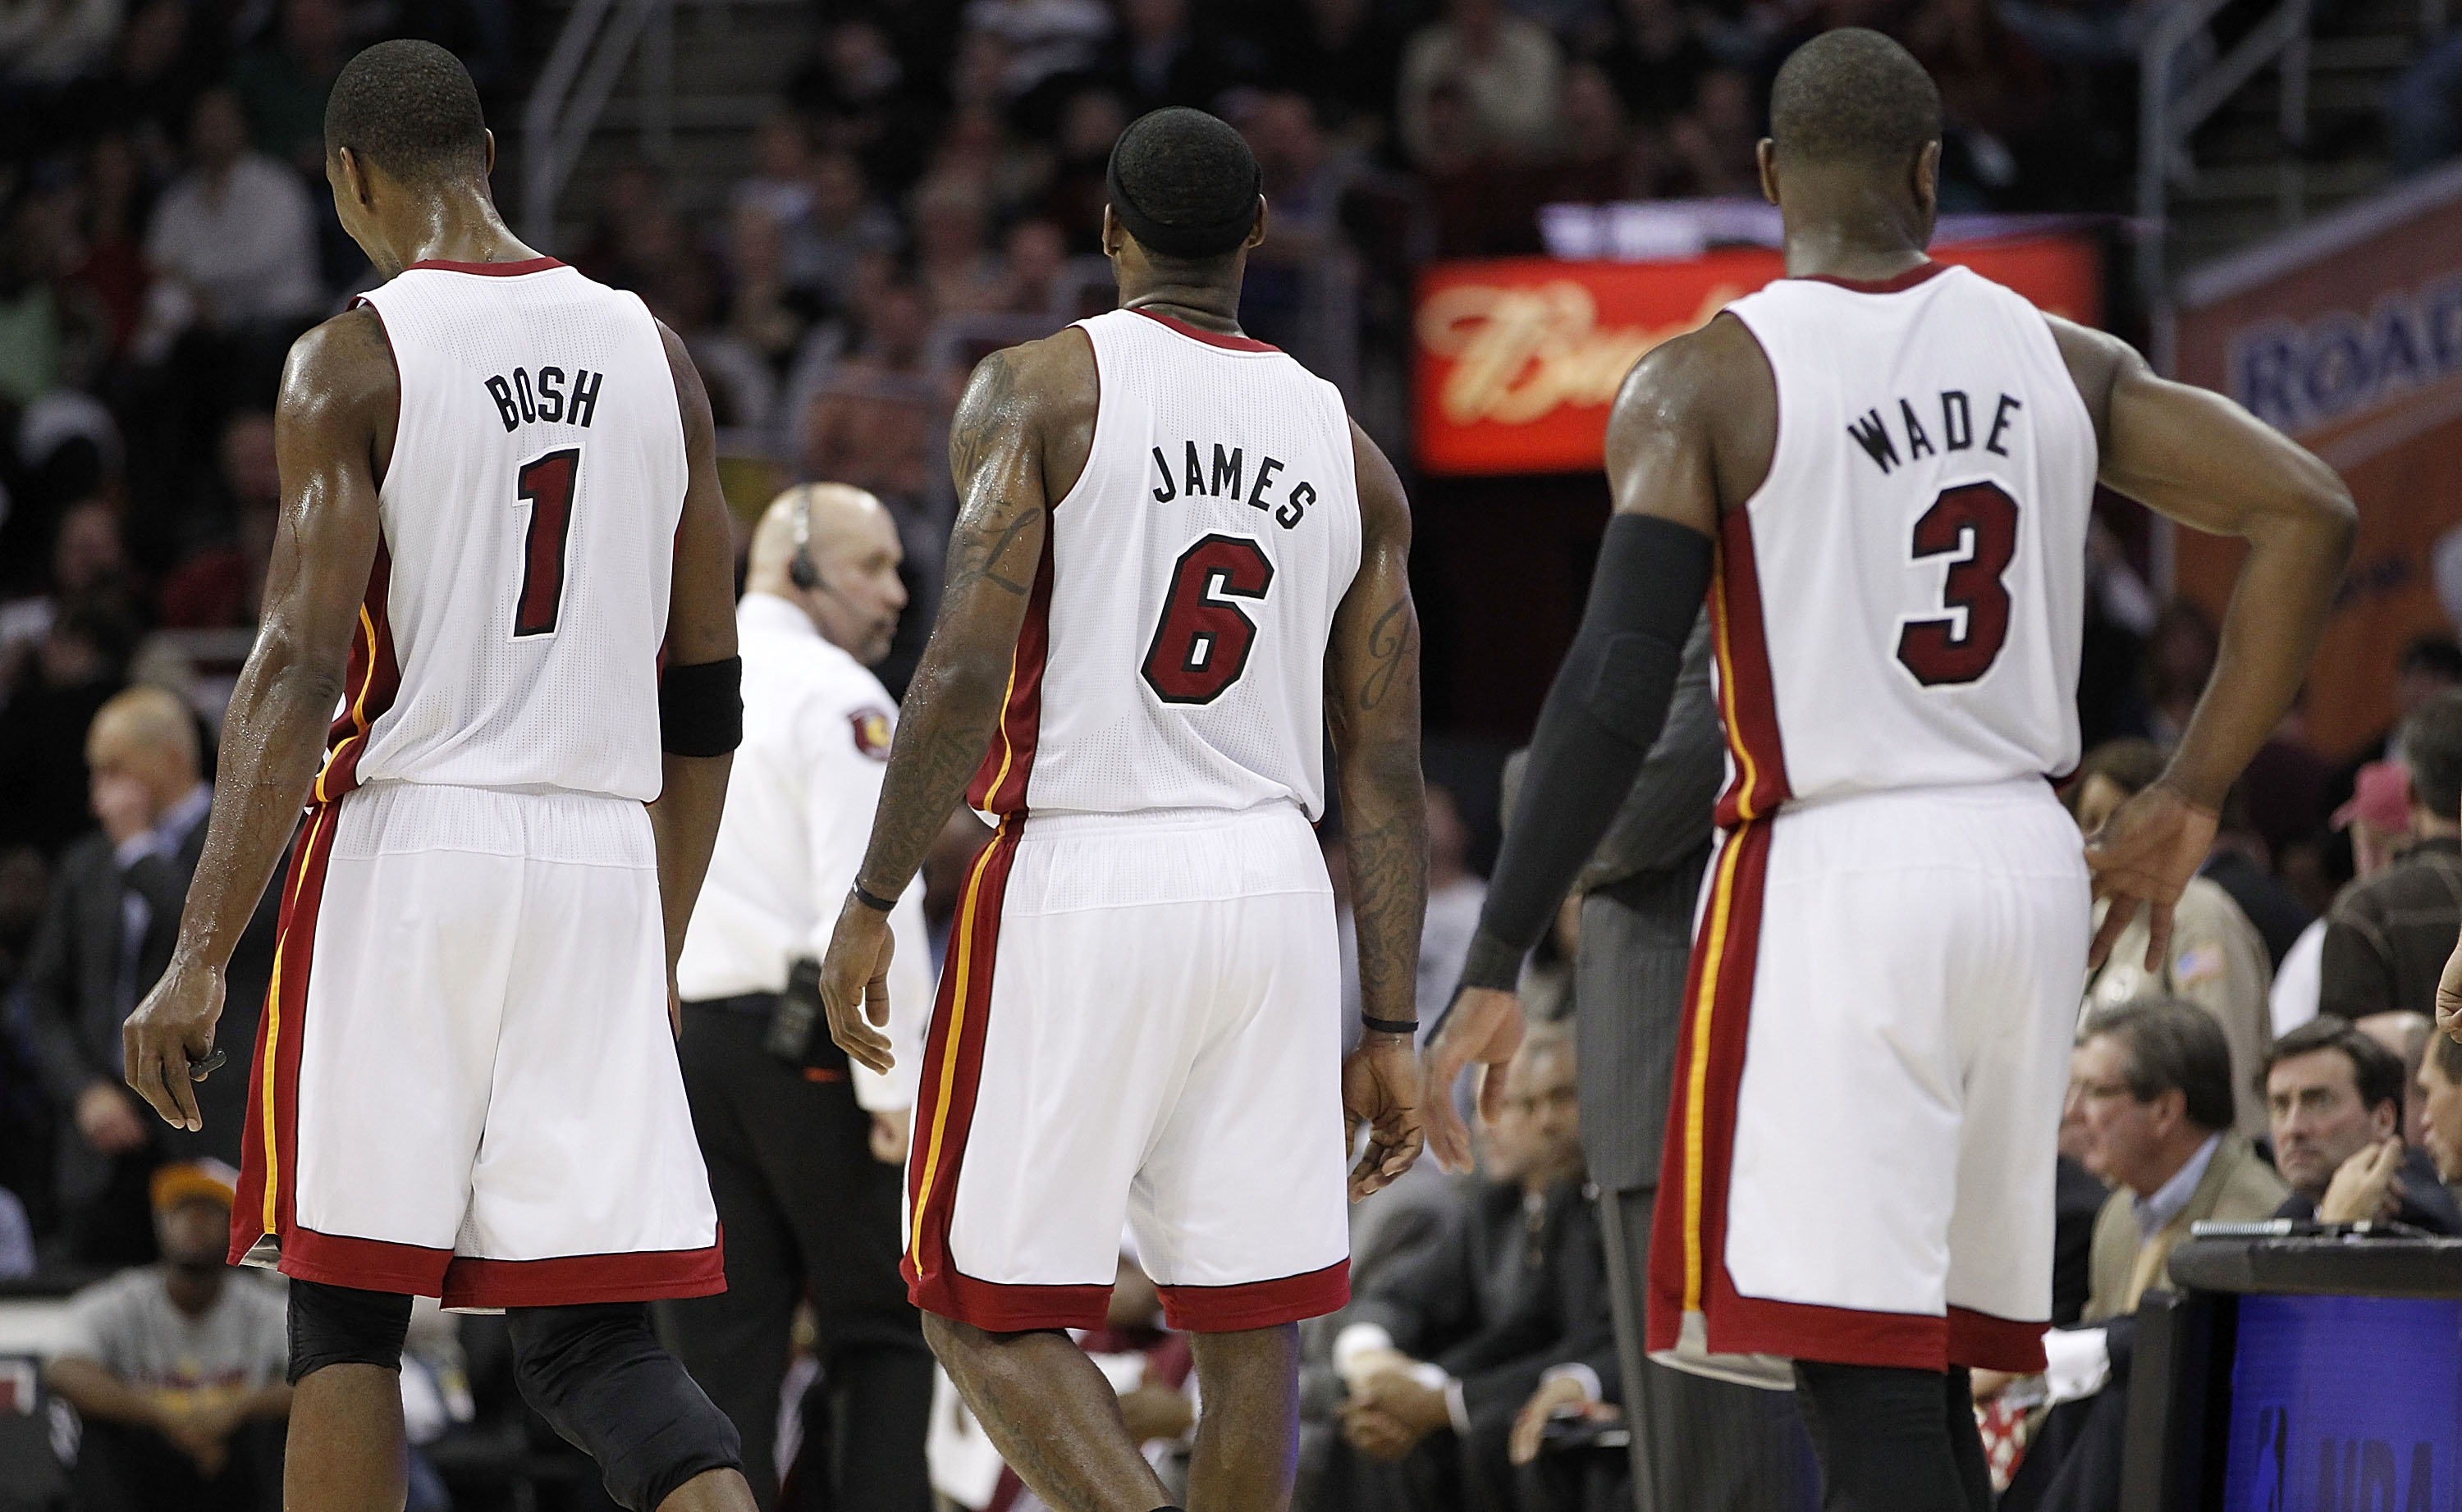 CLEVELAND, OH - DECEMBER 02:  LeBron James #6, Chris Bosh #1 and Dwyane Wade #3 of the Miami Heat walk onto the loor after a timeout while playing the Cleveland Cavaliers at Quicken Loans Arena on December 2, 2010 in Cleveland, Ohio. NOTE TO USER: User ex